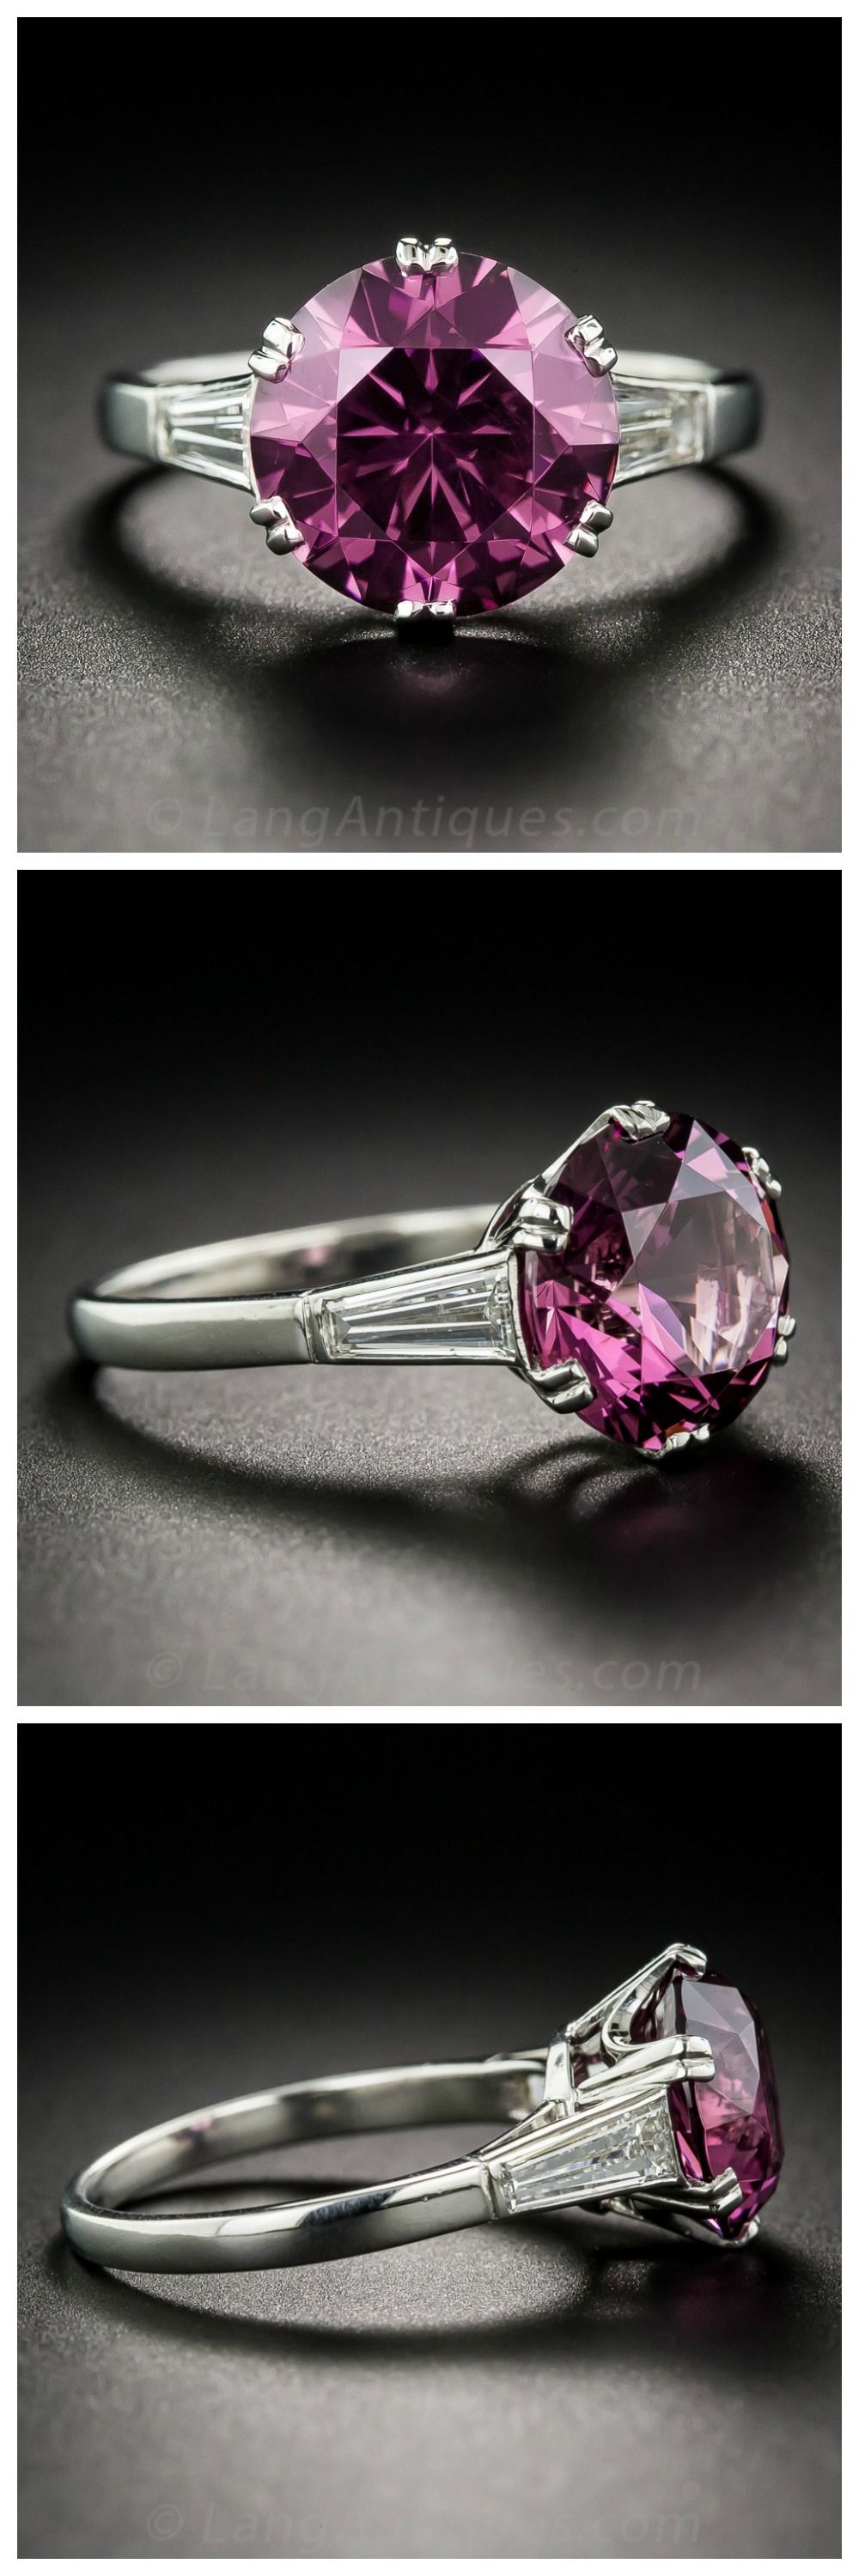 engagement rings wedding unique diamond and beautiful of unusual non exotic